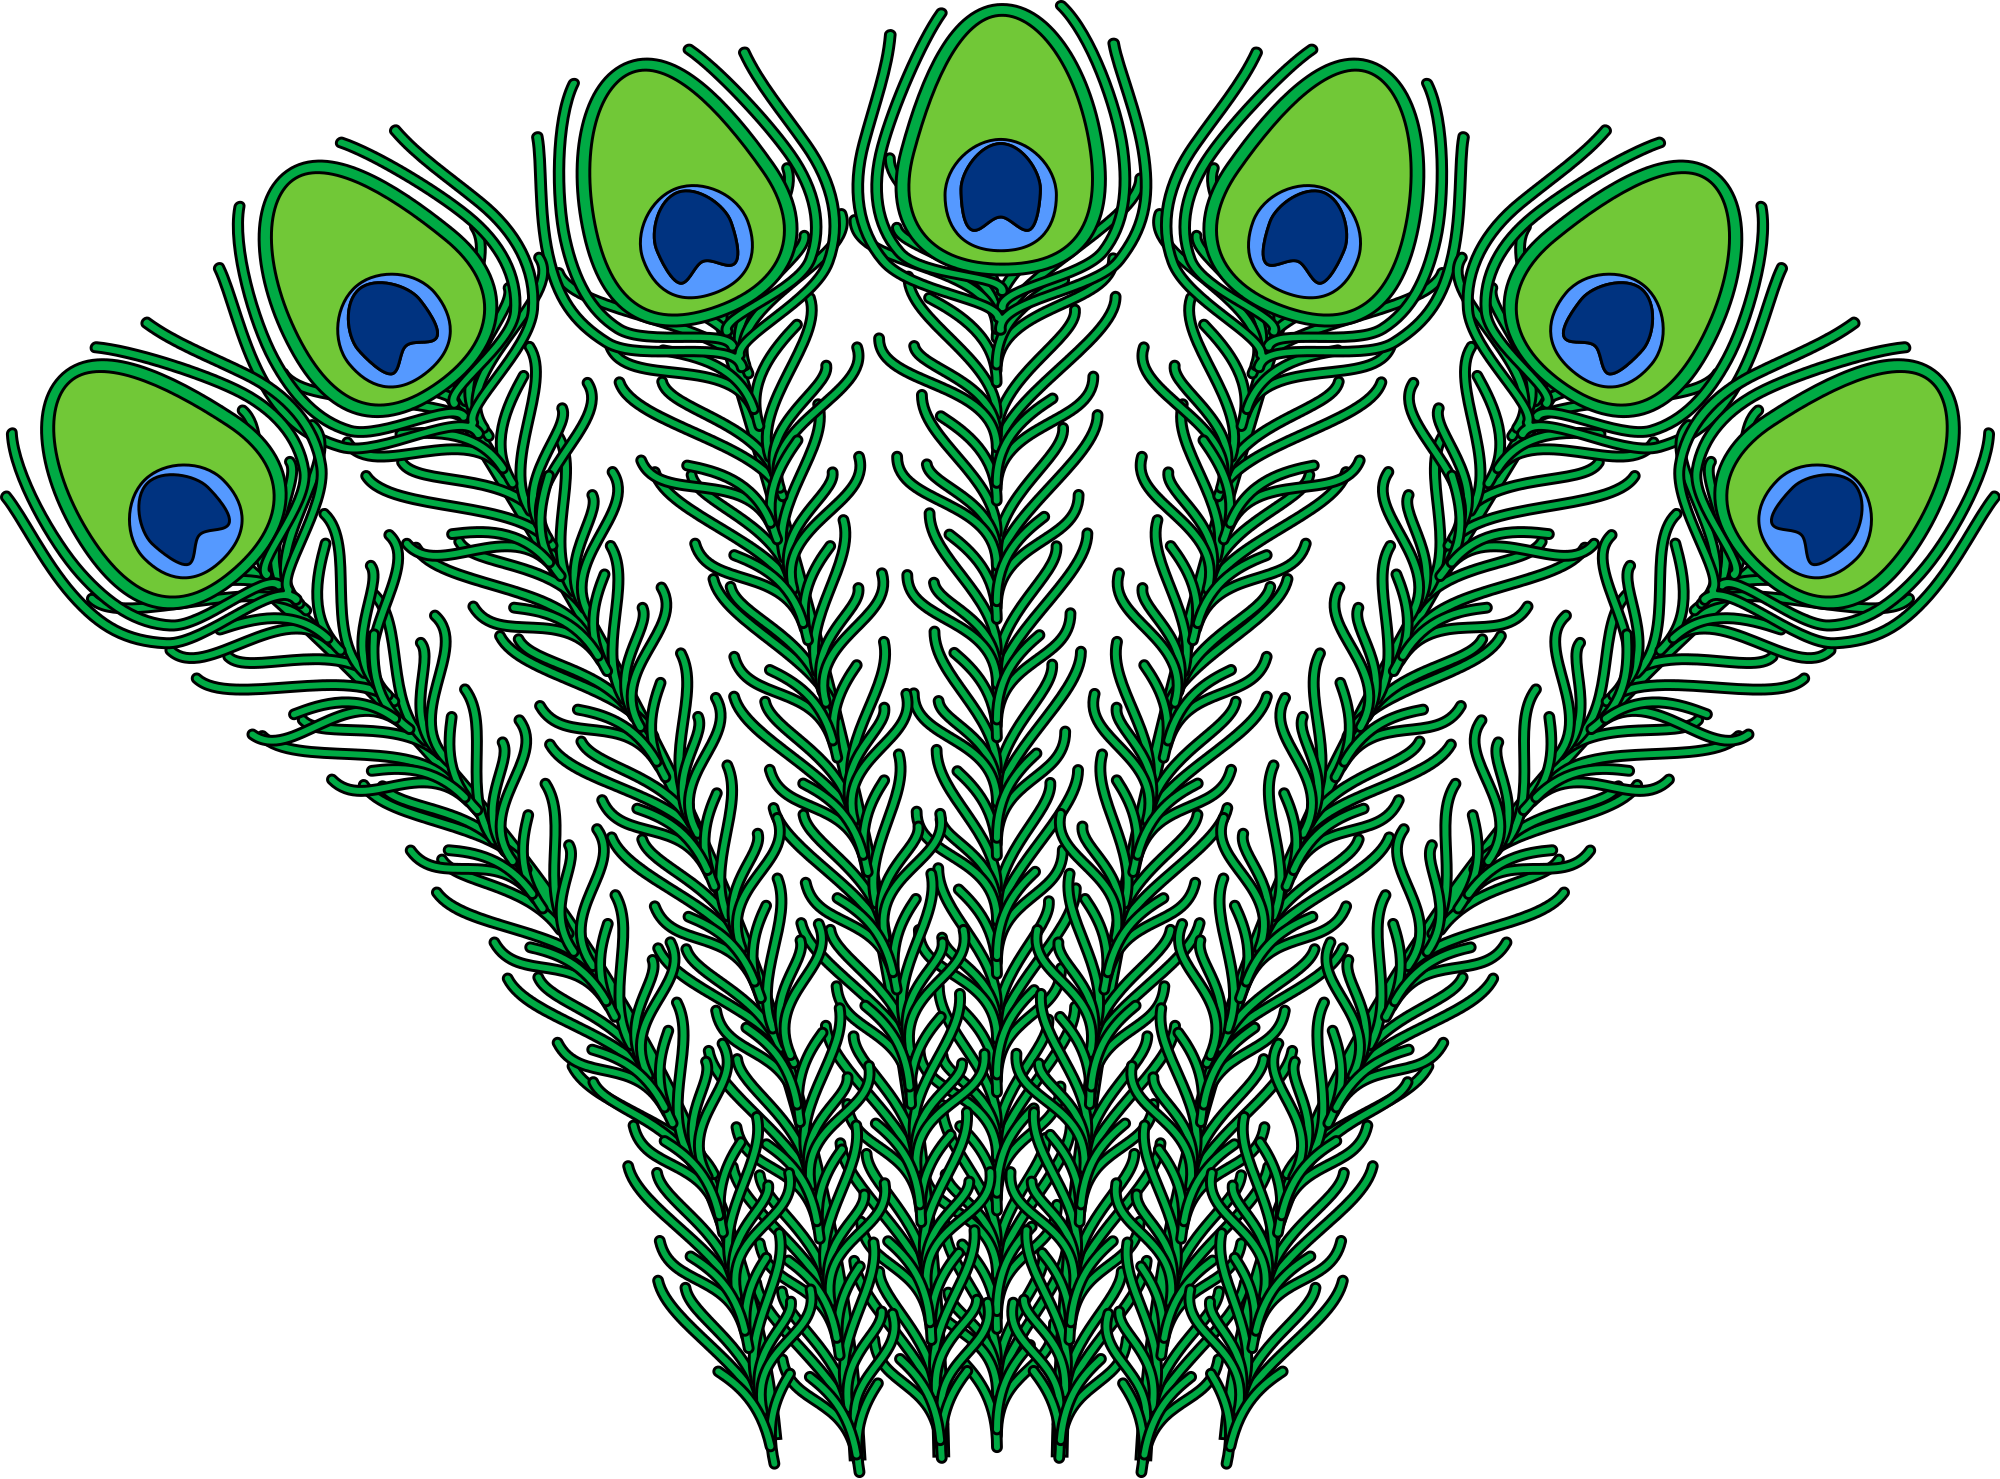 2000x1479 Fileheraldic Peacock Feathers.svg